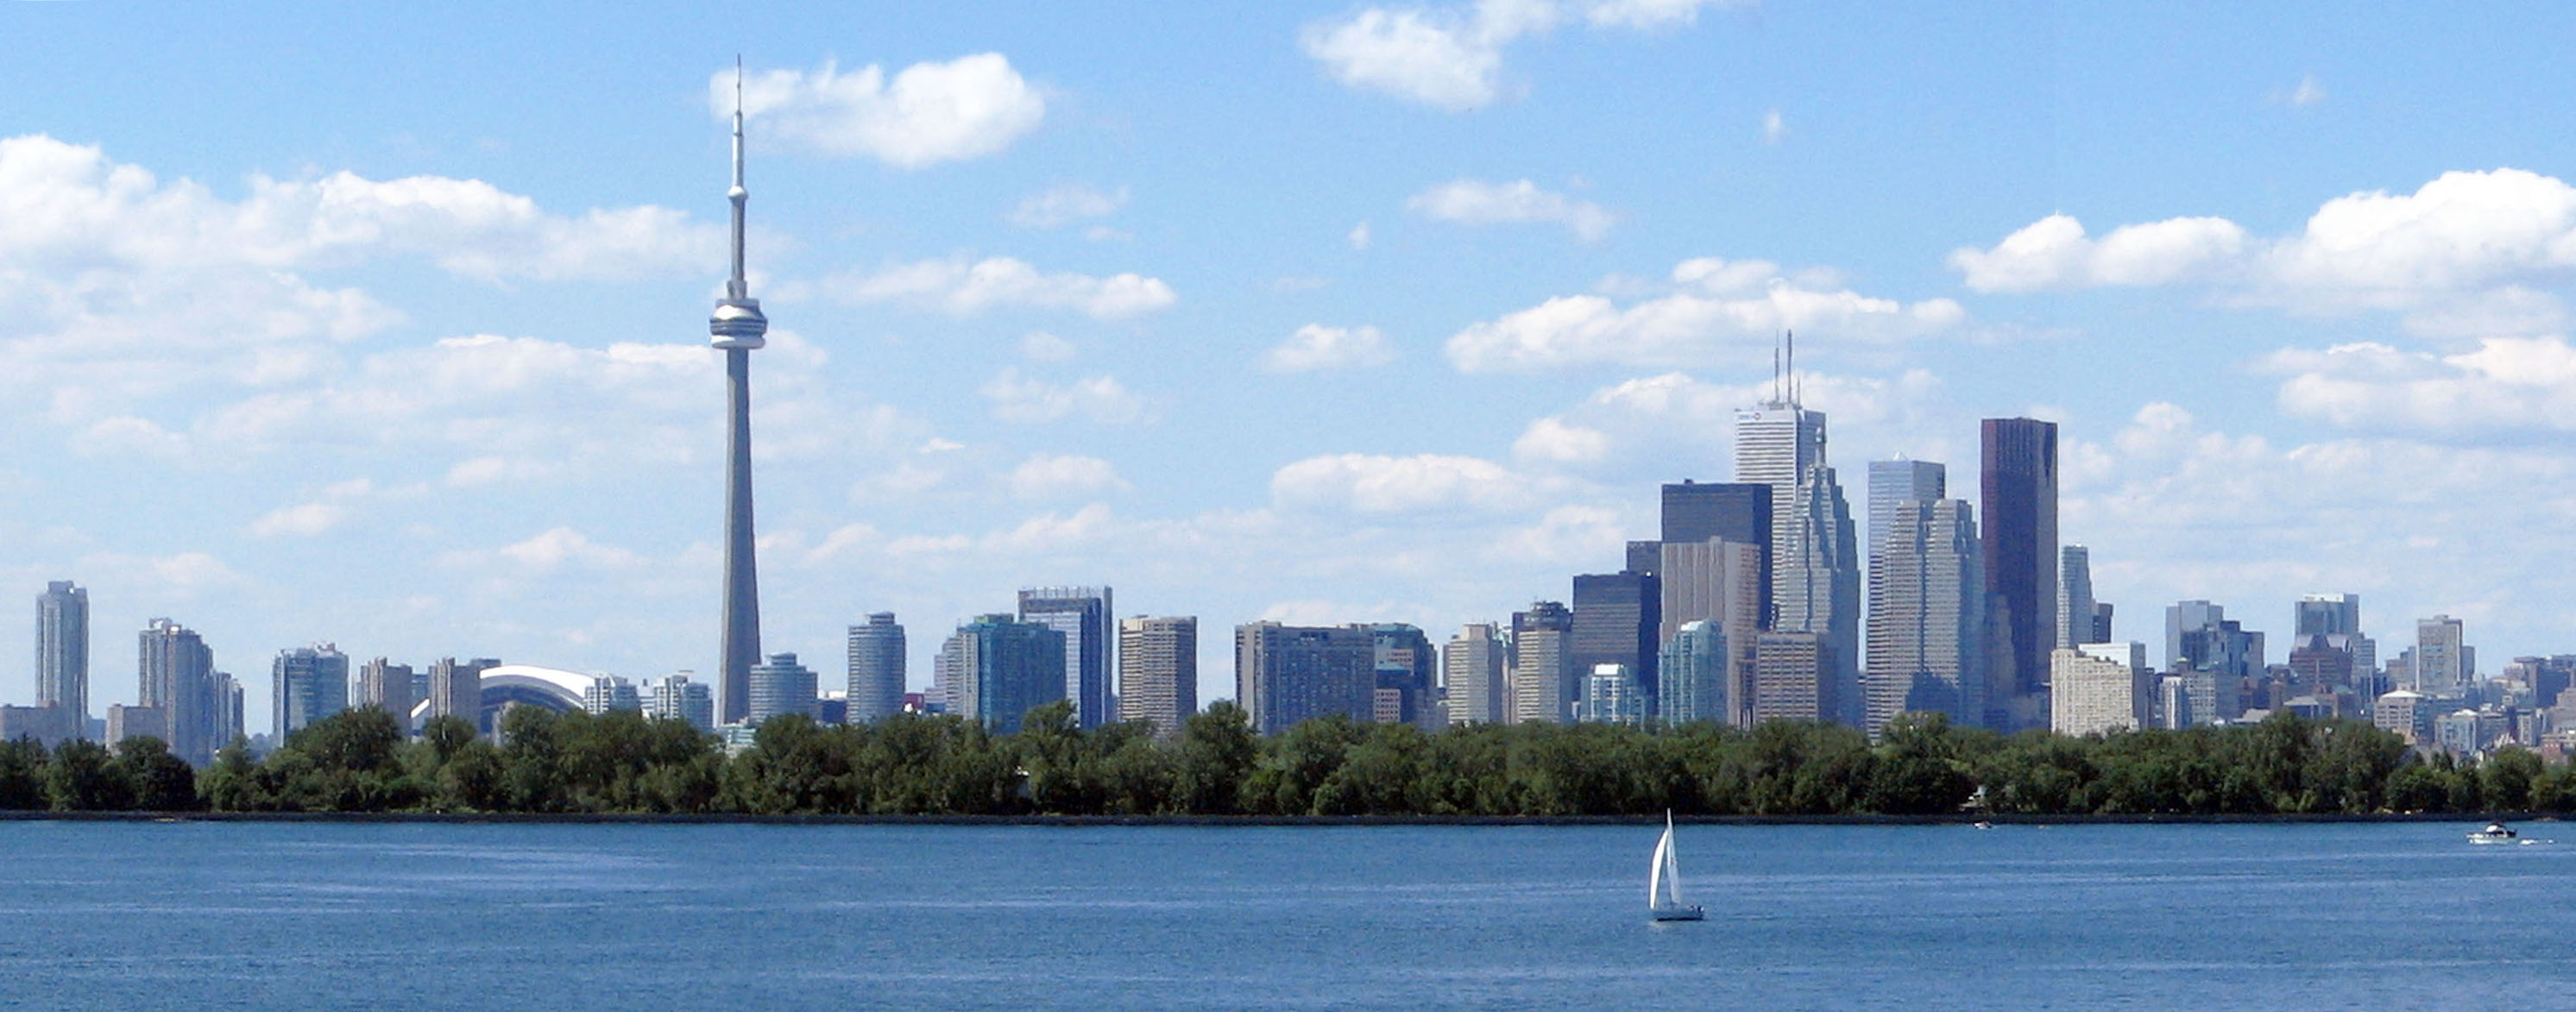 Description Toronto skyline tommythompsonpark croppedjpg 2985x1173